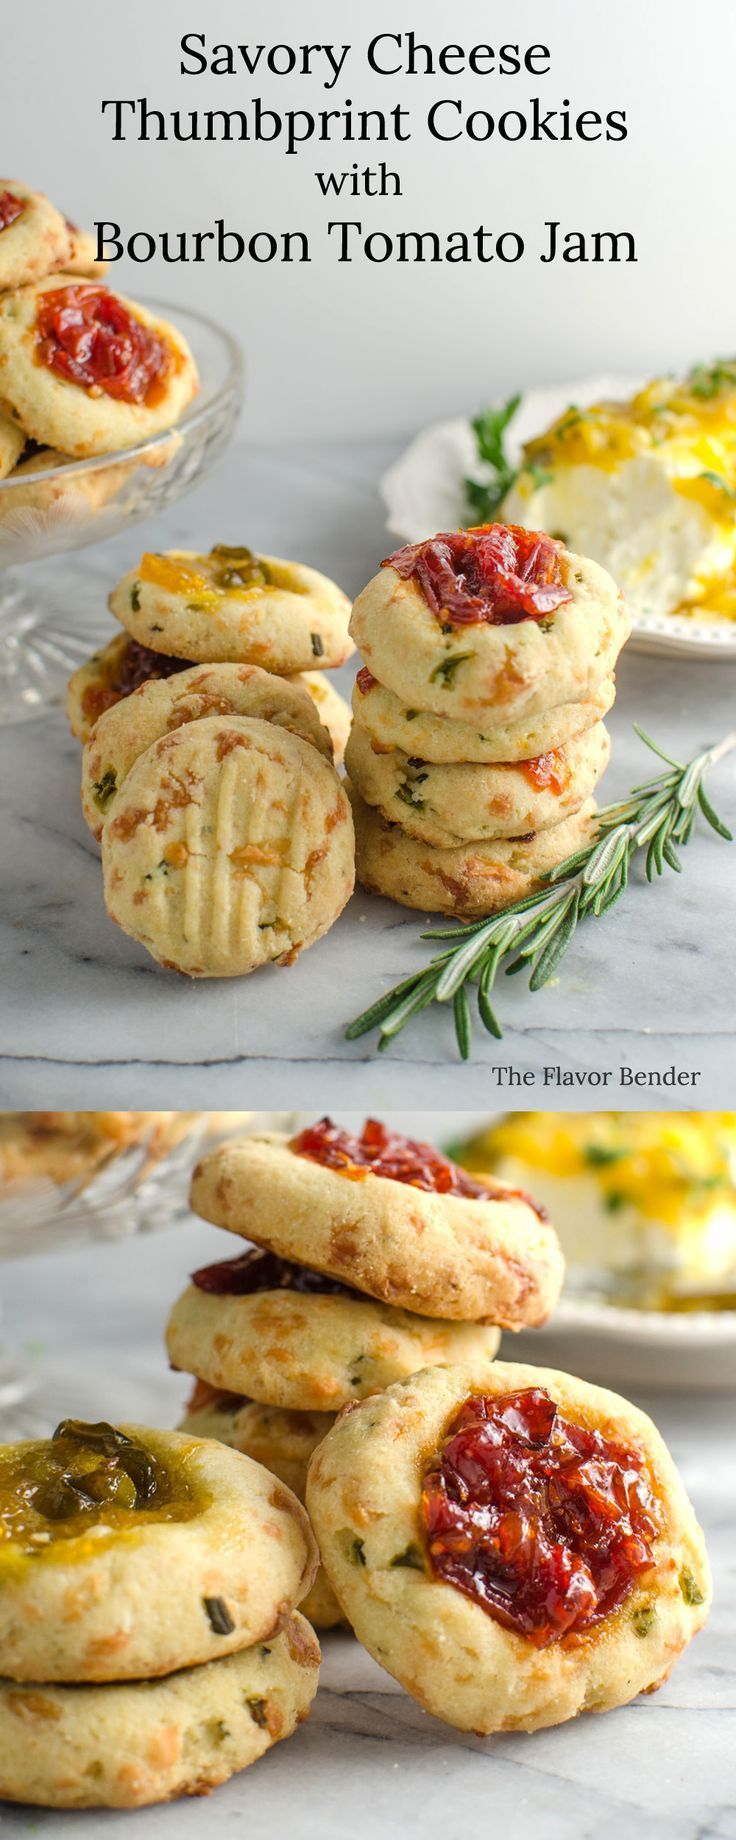 Savory Cheese Thumbprint Cookies with Bourbon Tomato Jam - These savory cookies are the NEXT BEST THING! Buttery, herby cookies with delicious cheddar cheese, and an amazing tomato jam! Comes together easily and its PERFECT as an appetizer, party food, or